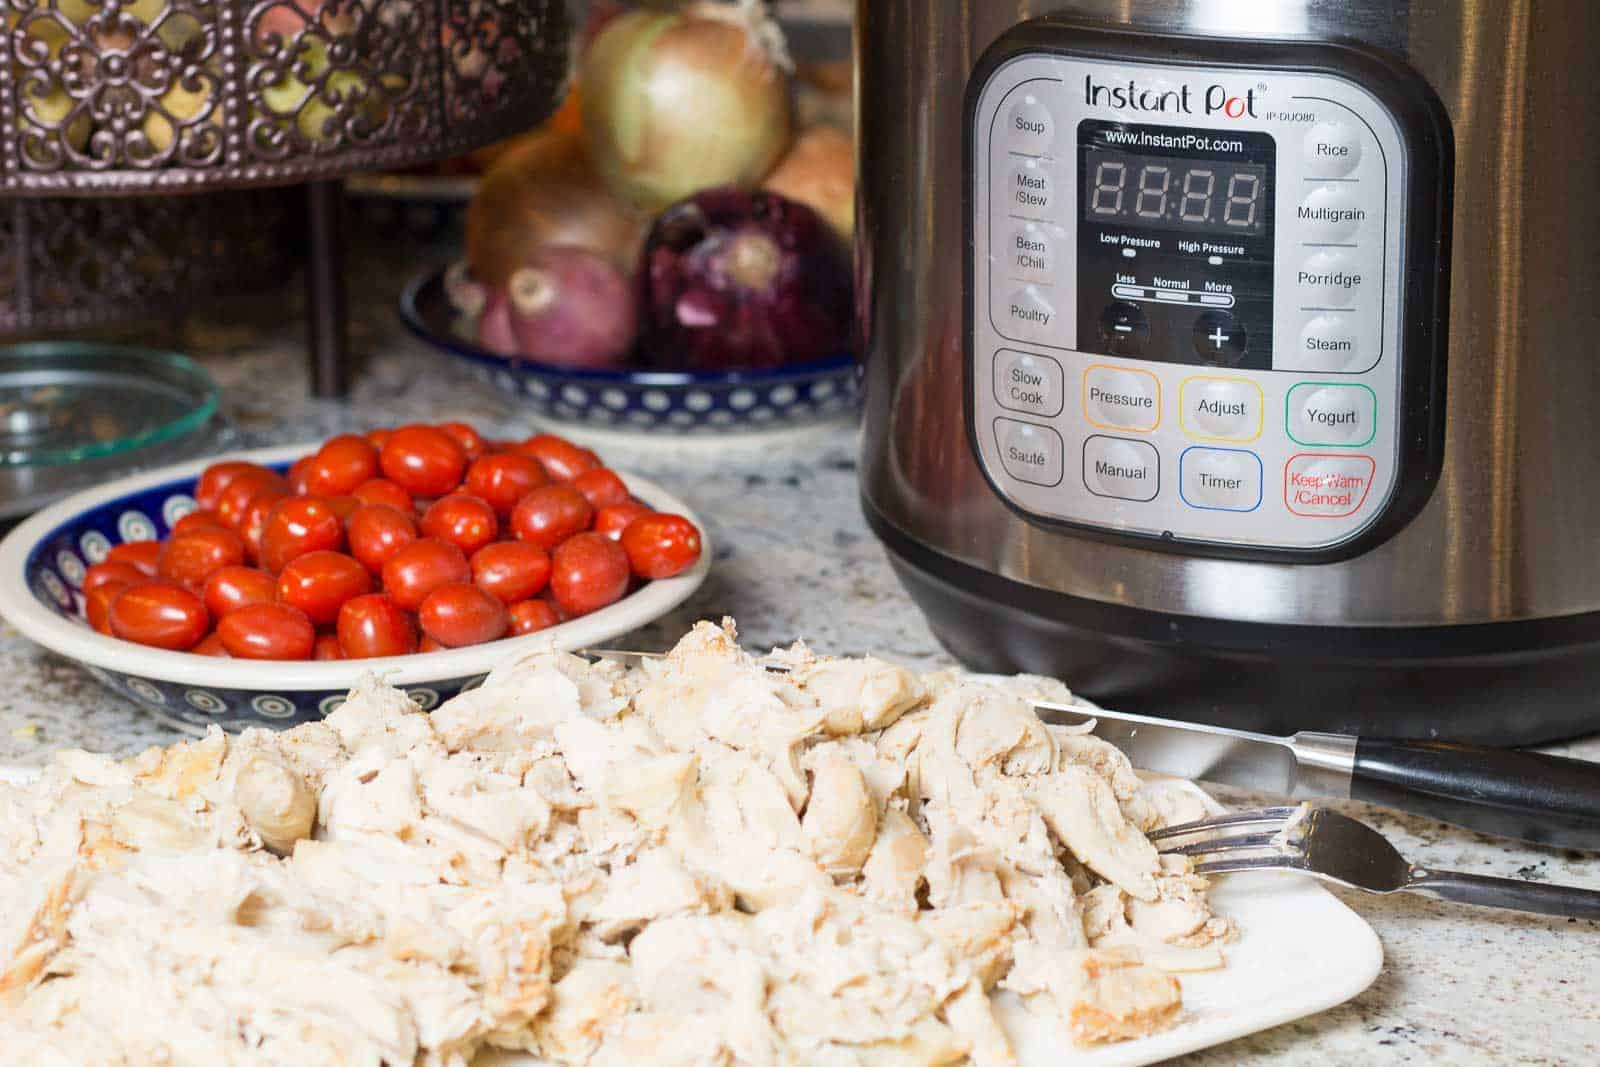 Instant Pot Shredded and Brined Chicken on a plate with Instant Pot and tomatoes and onions in background